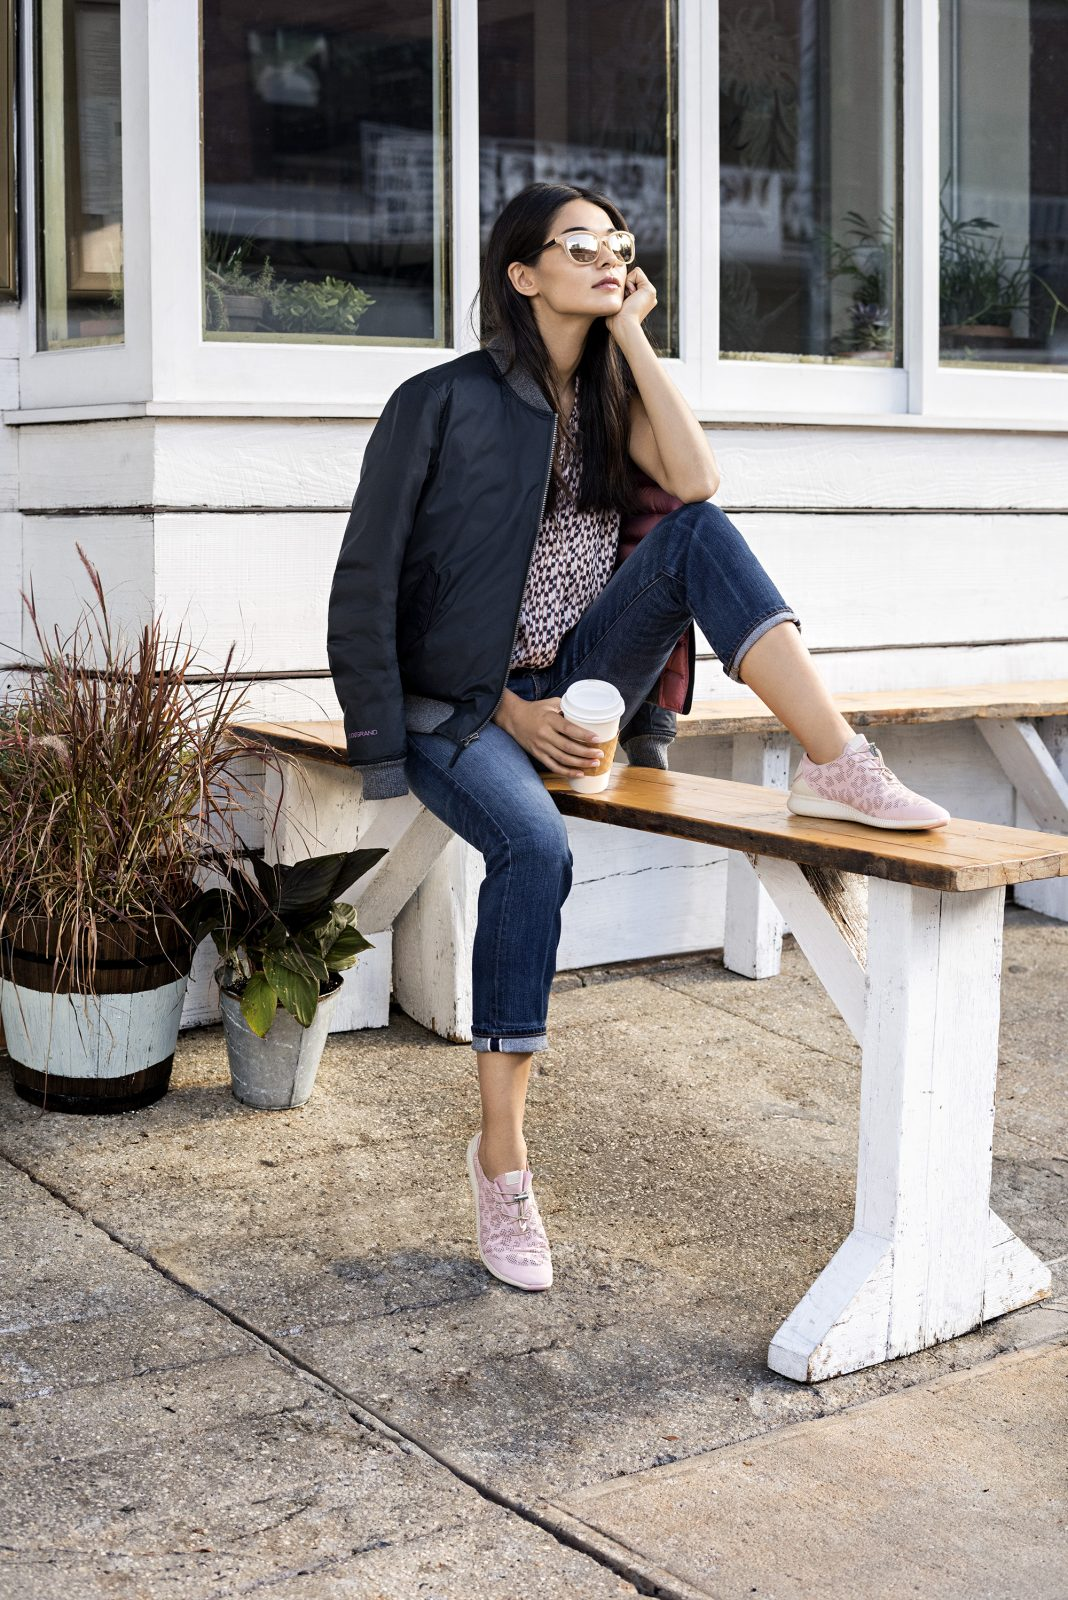 Sneakers: idee di look easy chic a prova di mamma